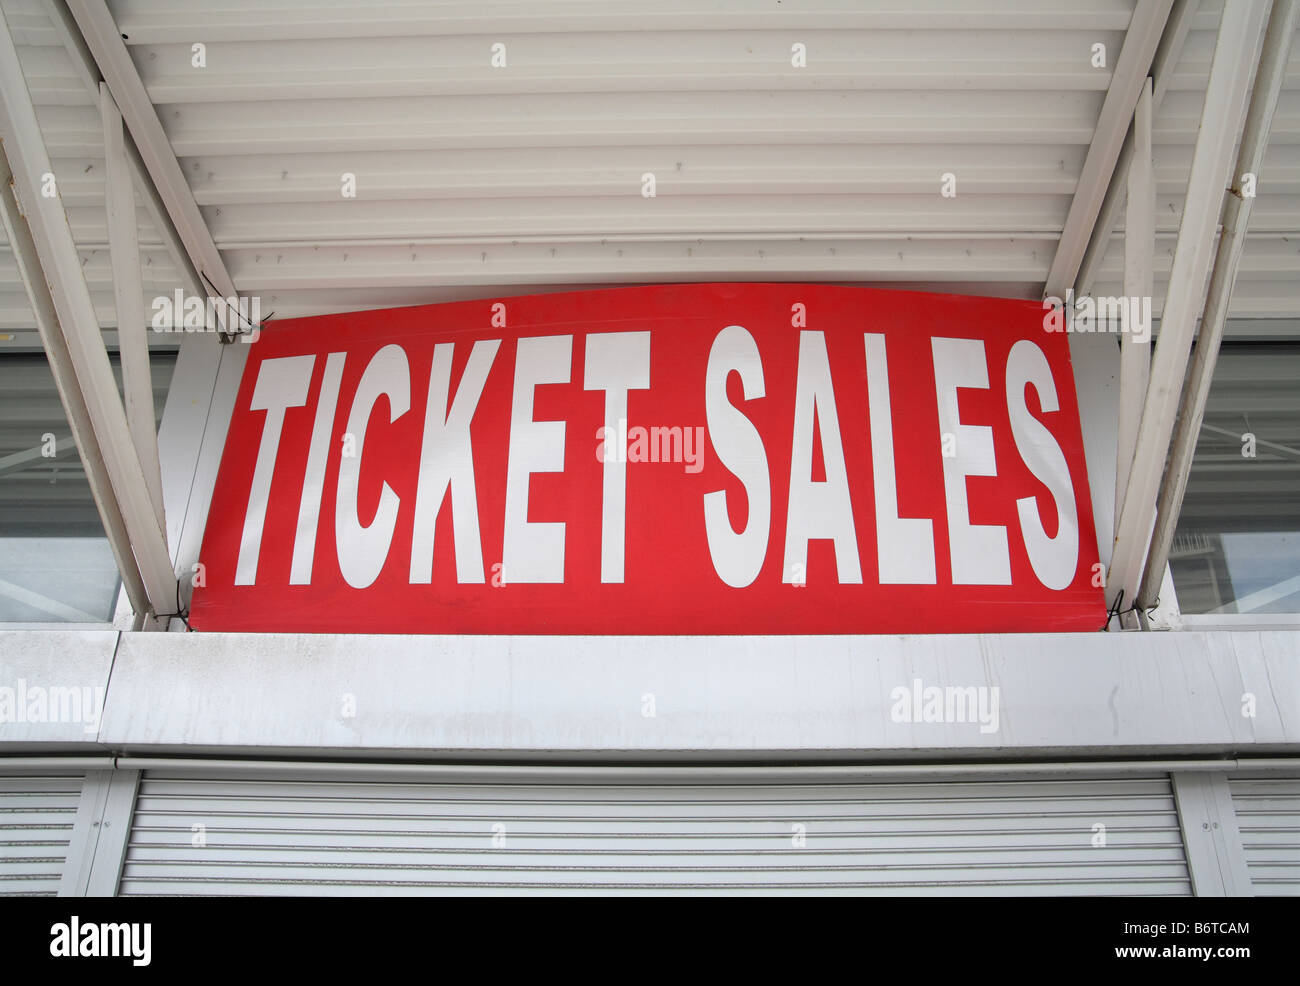 big red ticket sales sign above a booth window - Stock Image